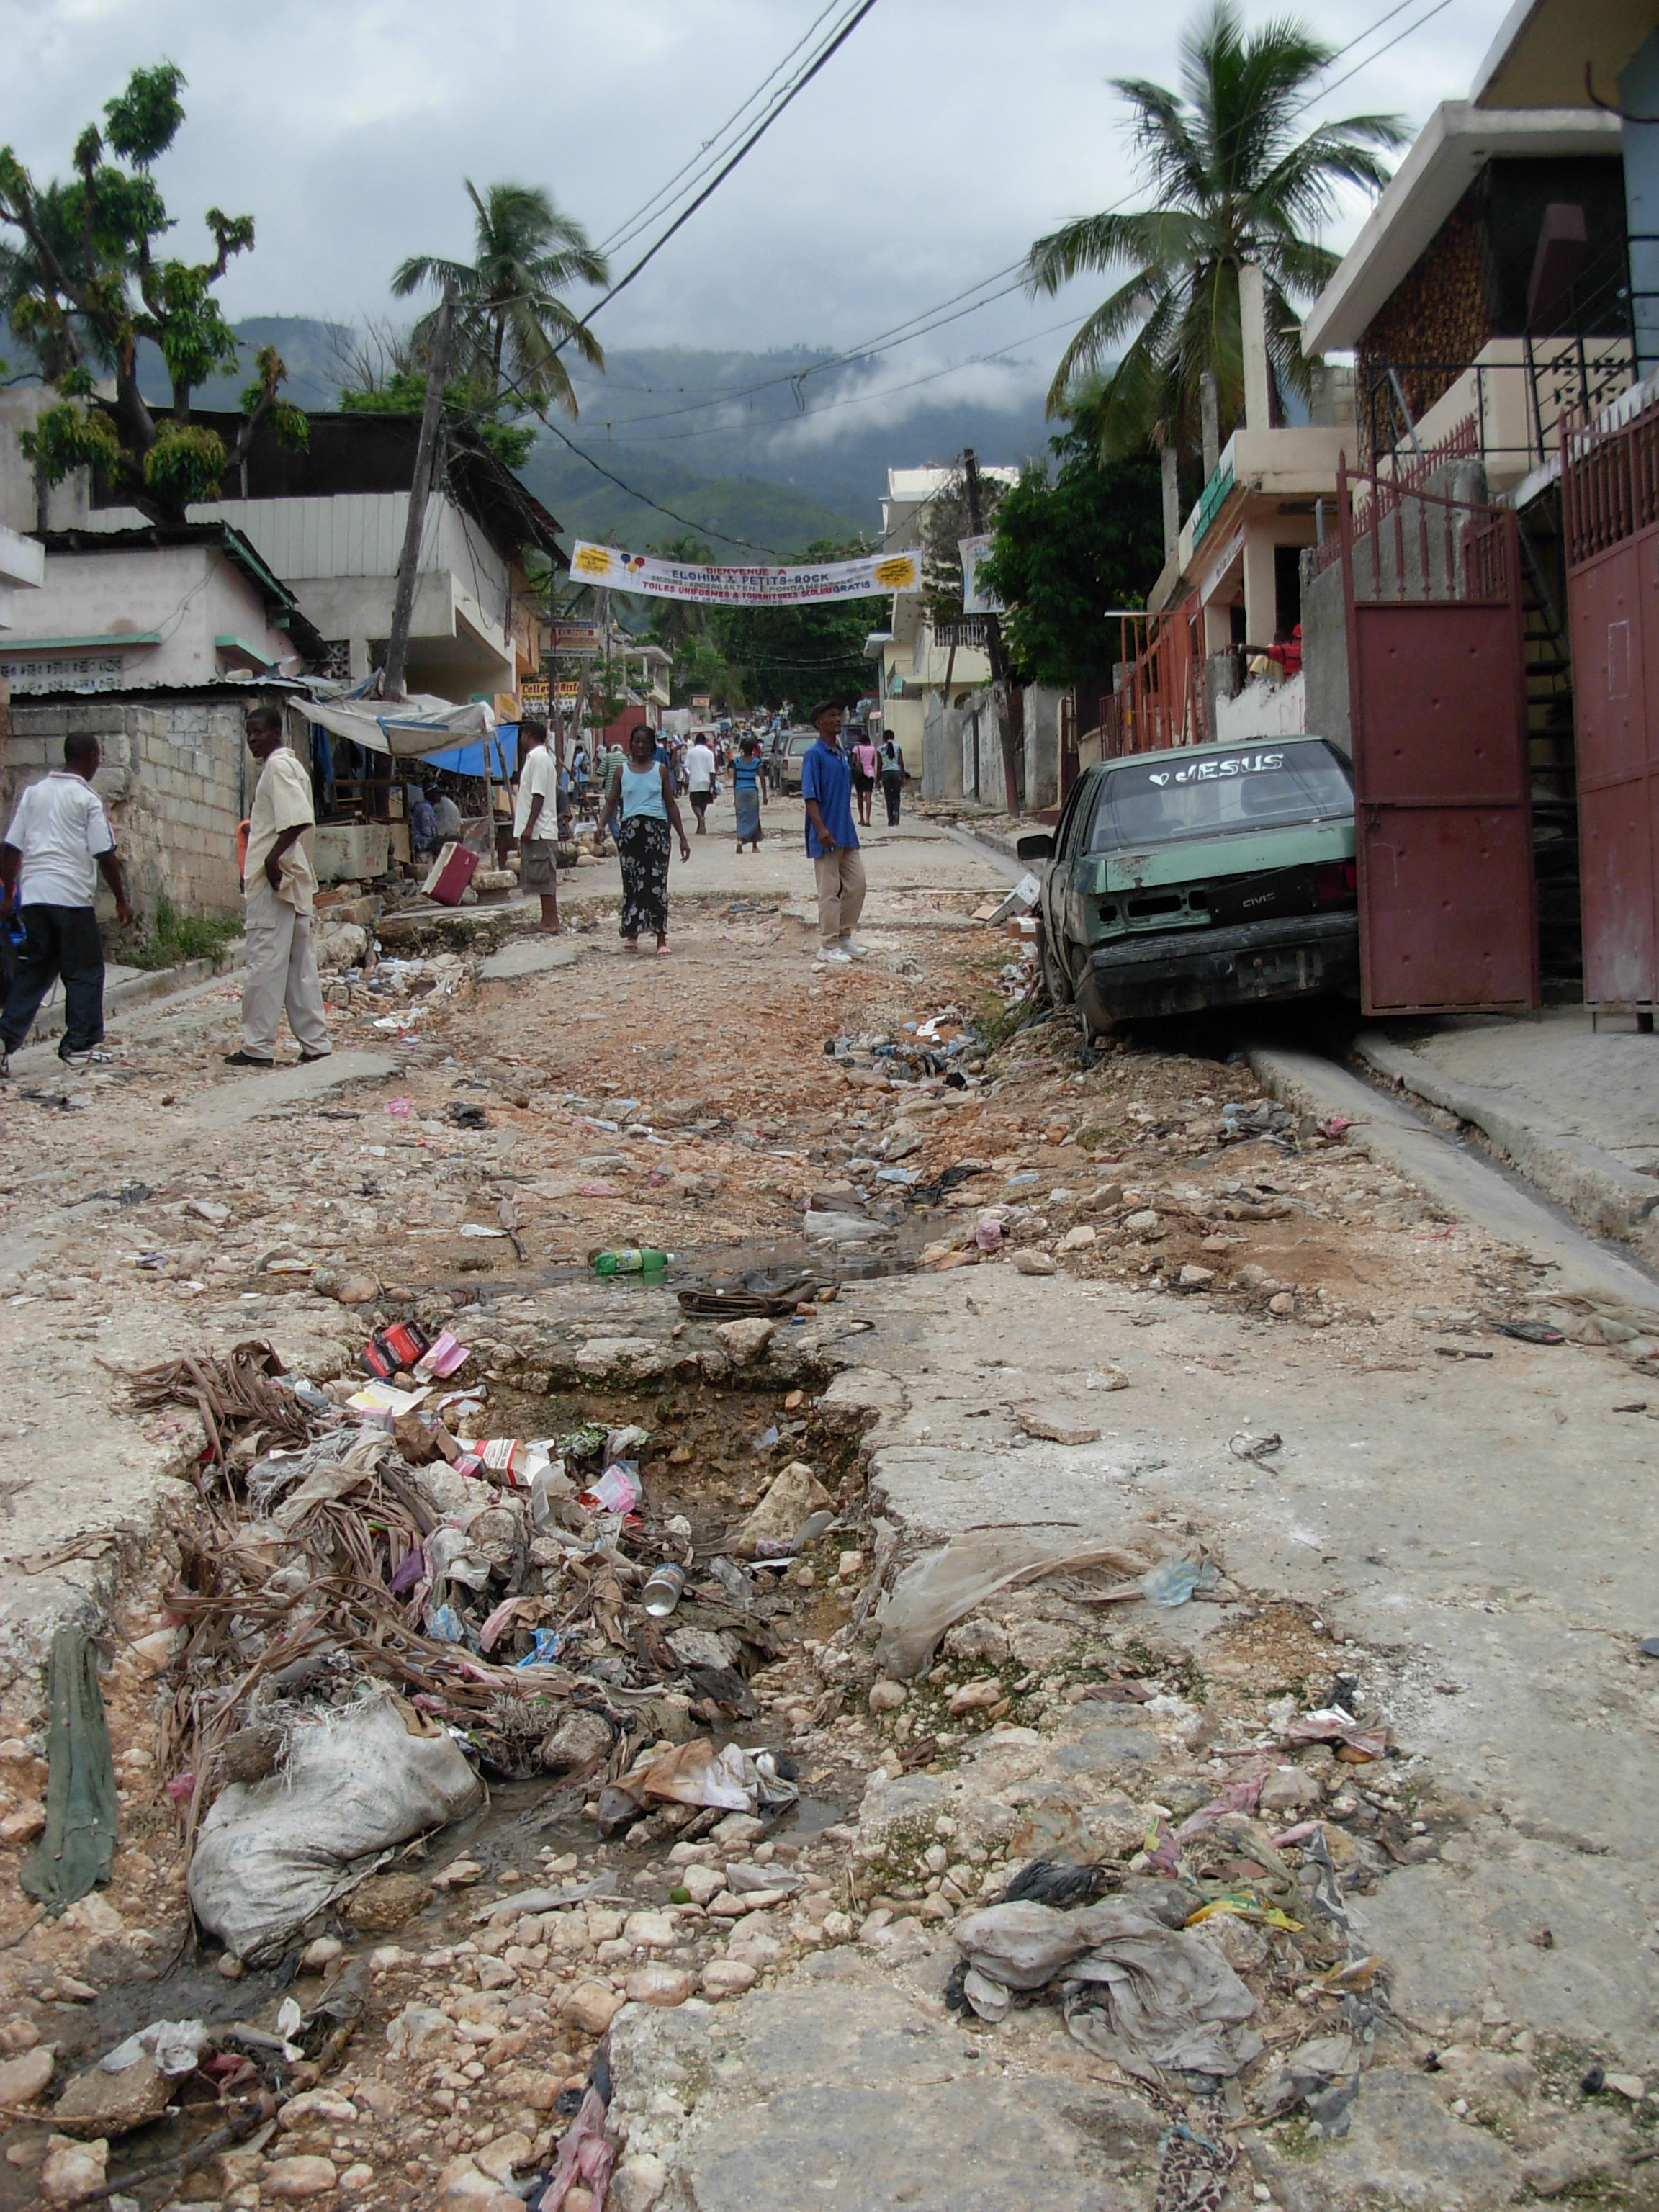 The streets of Port-au-Prince.